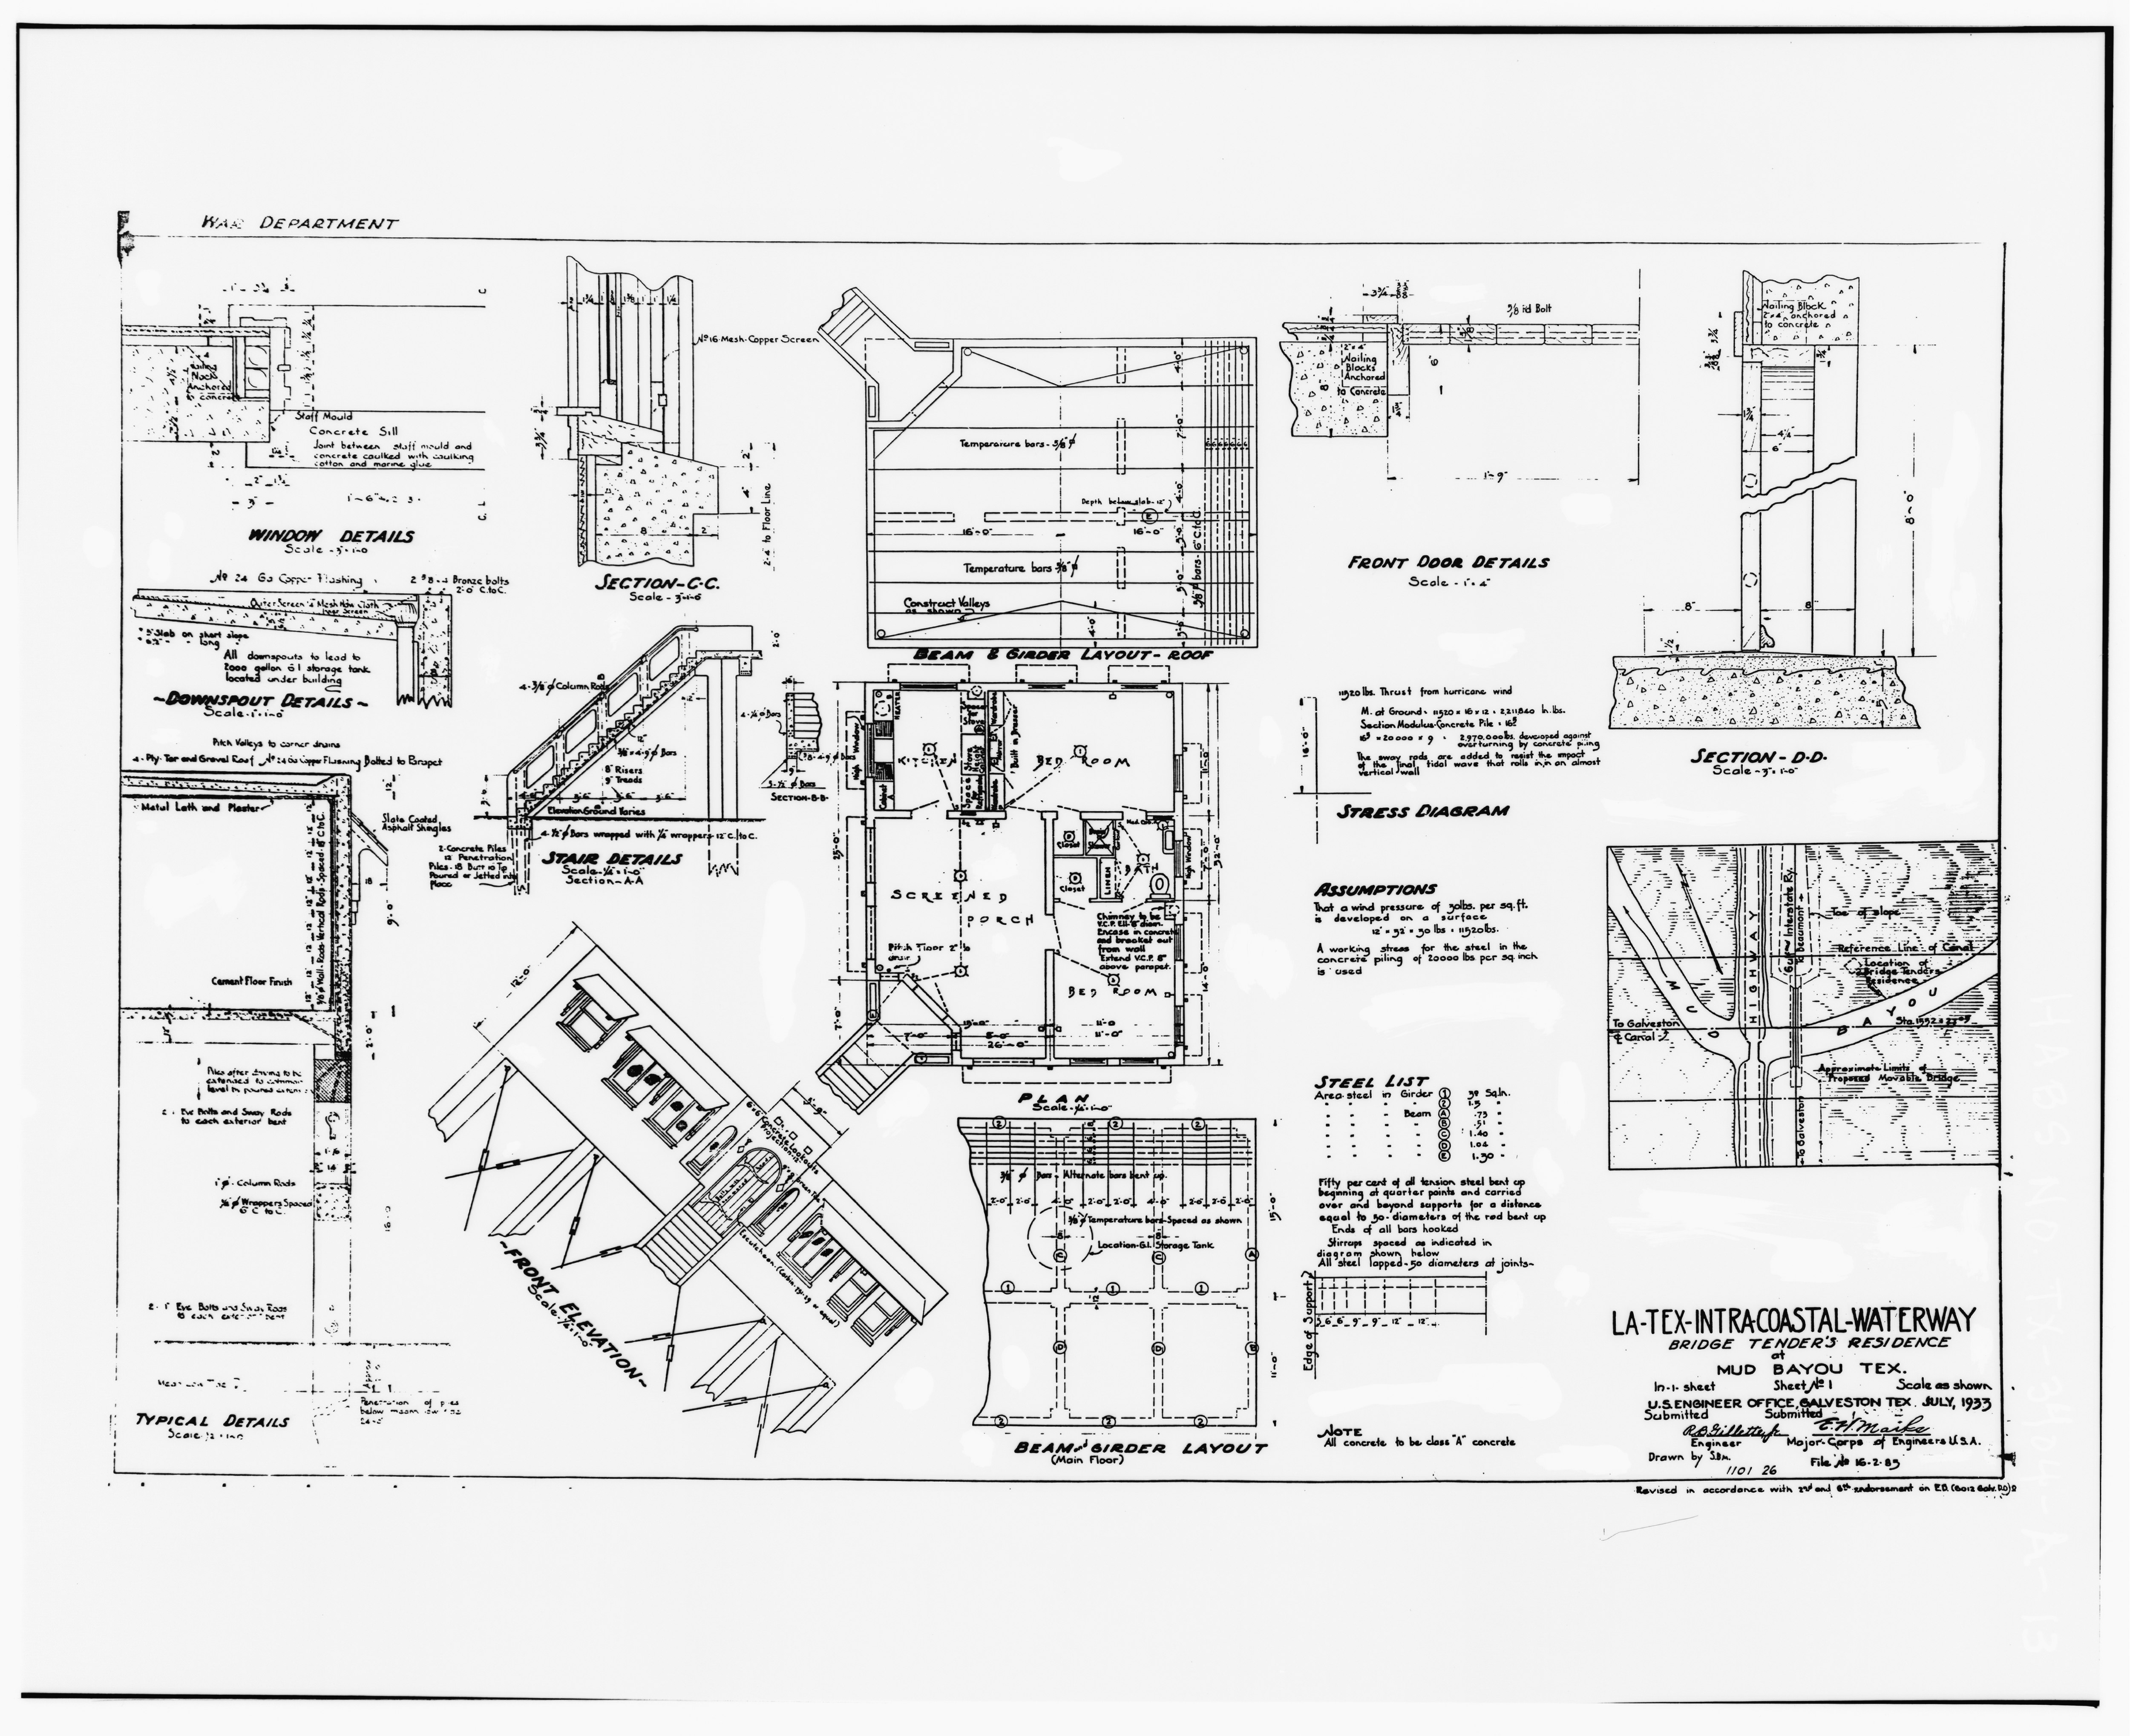 File Photo Of Construction Specification Drawing By